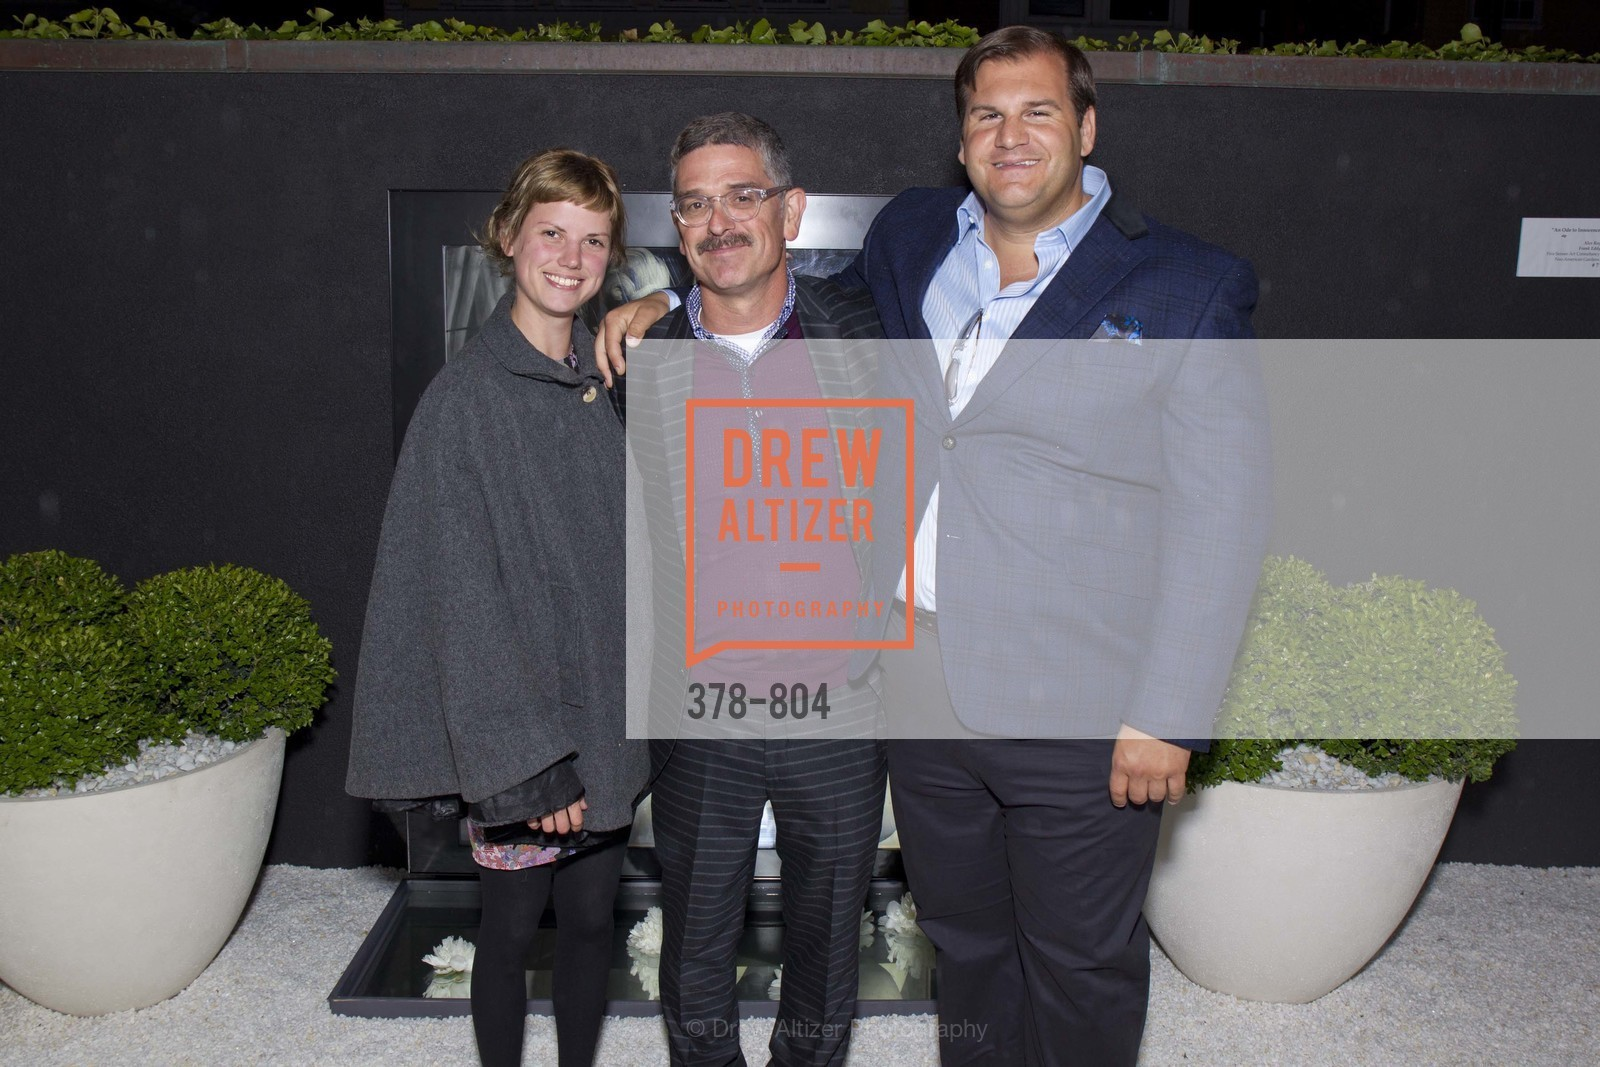 Faith Calloway, Frank Eddie, Robert Collura, San Francisco Decorator Showcase Opening Night Party, US, April 25th, 2015,Drew Altizer, Drew Altizer Photography, full-service agency, private events, San Francisco photographer, photographer california